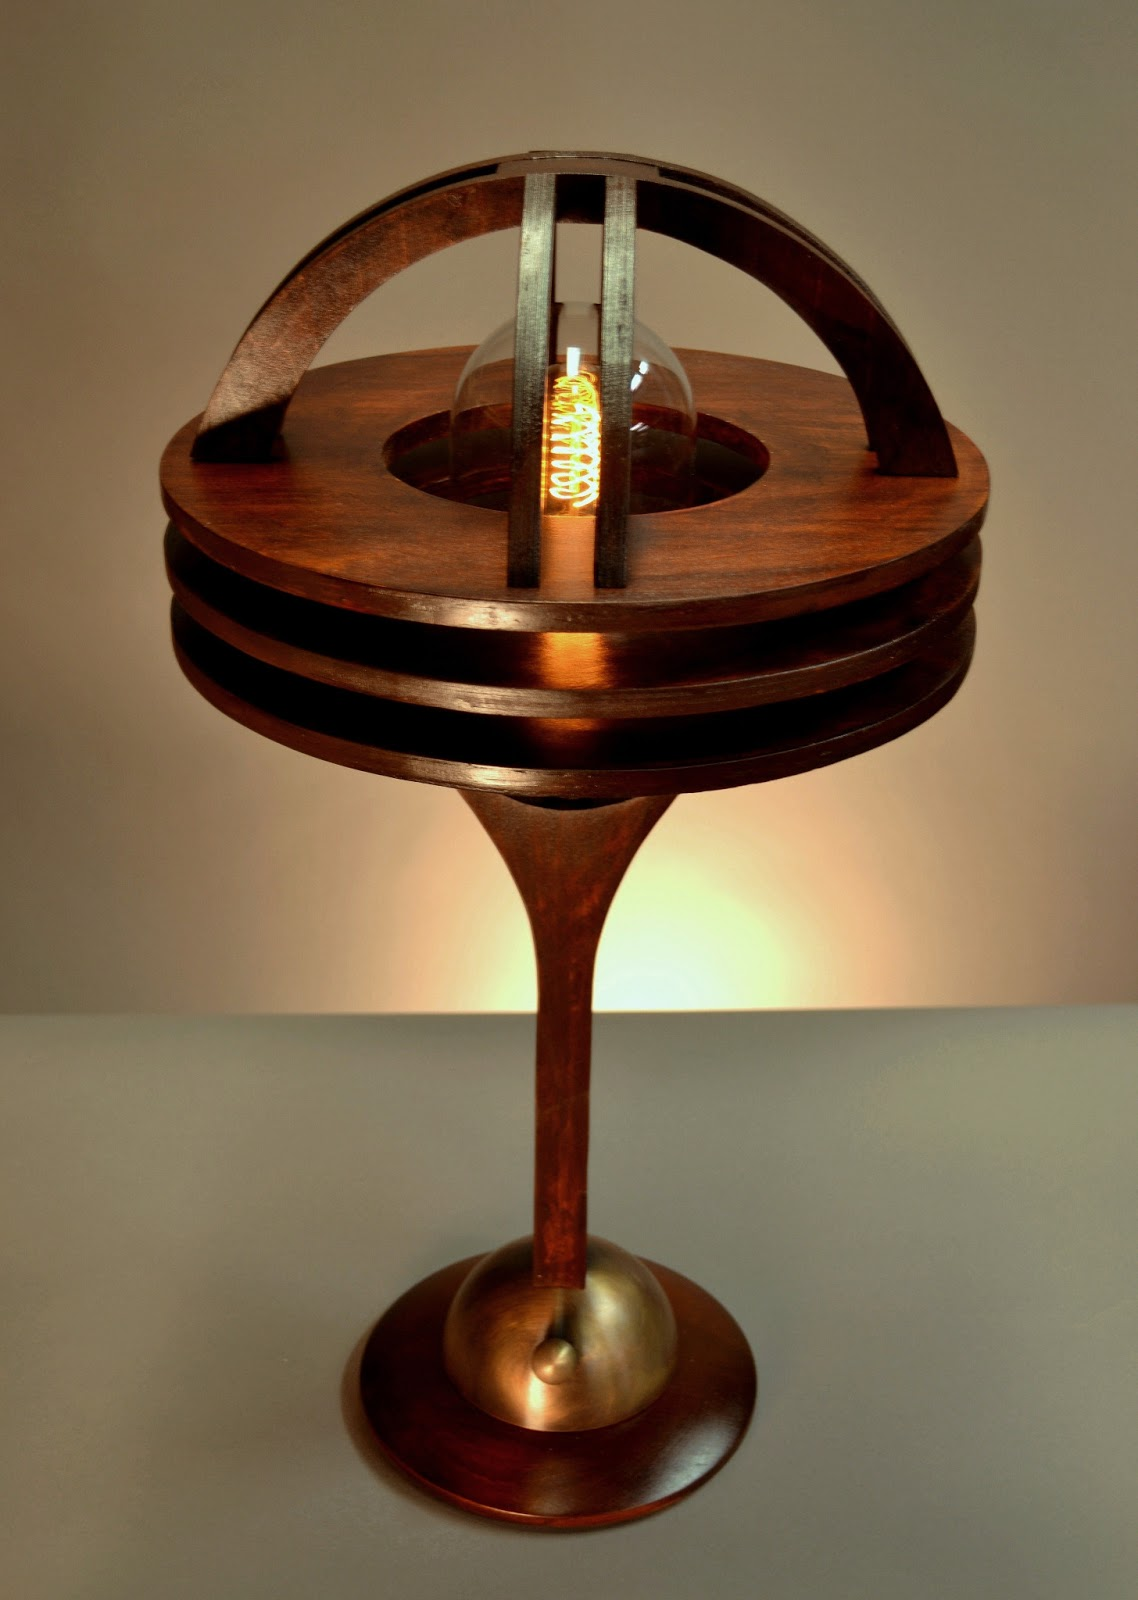 Sagemarinedetails sage marine table lamp designed and hand made by art donovan solid mahogany and acid washed solid brass glass dome with a vintage spiral filament bulb geotapseo Gallery